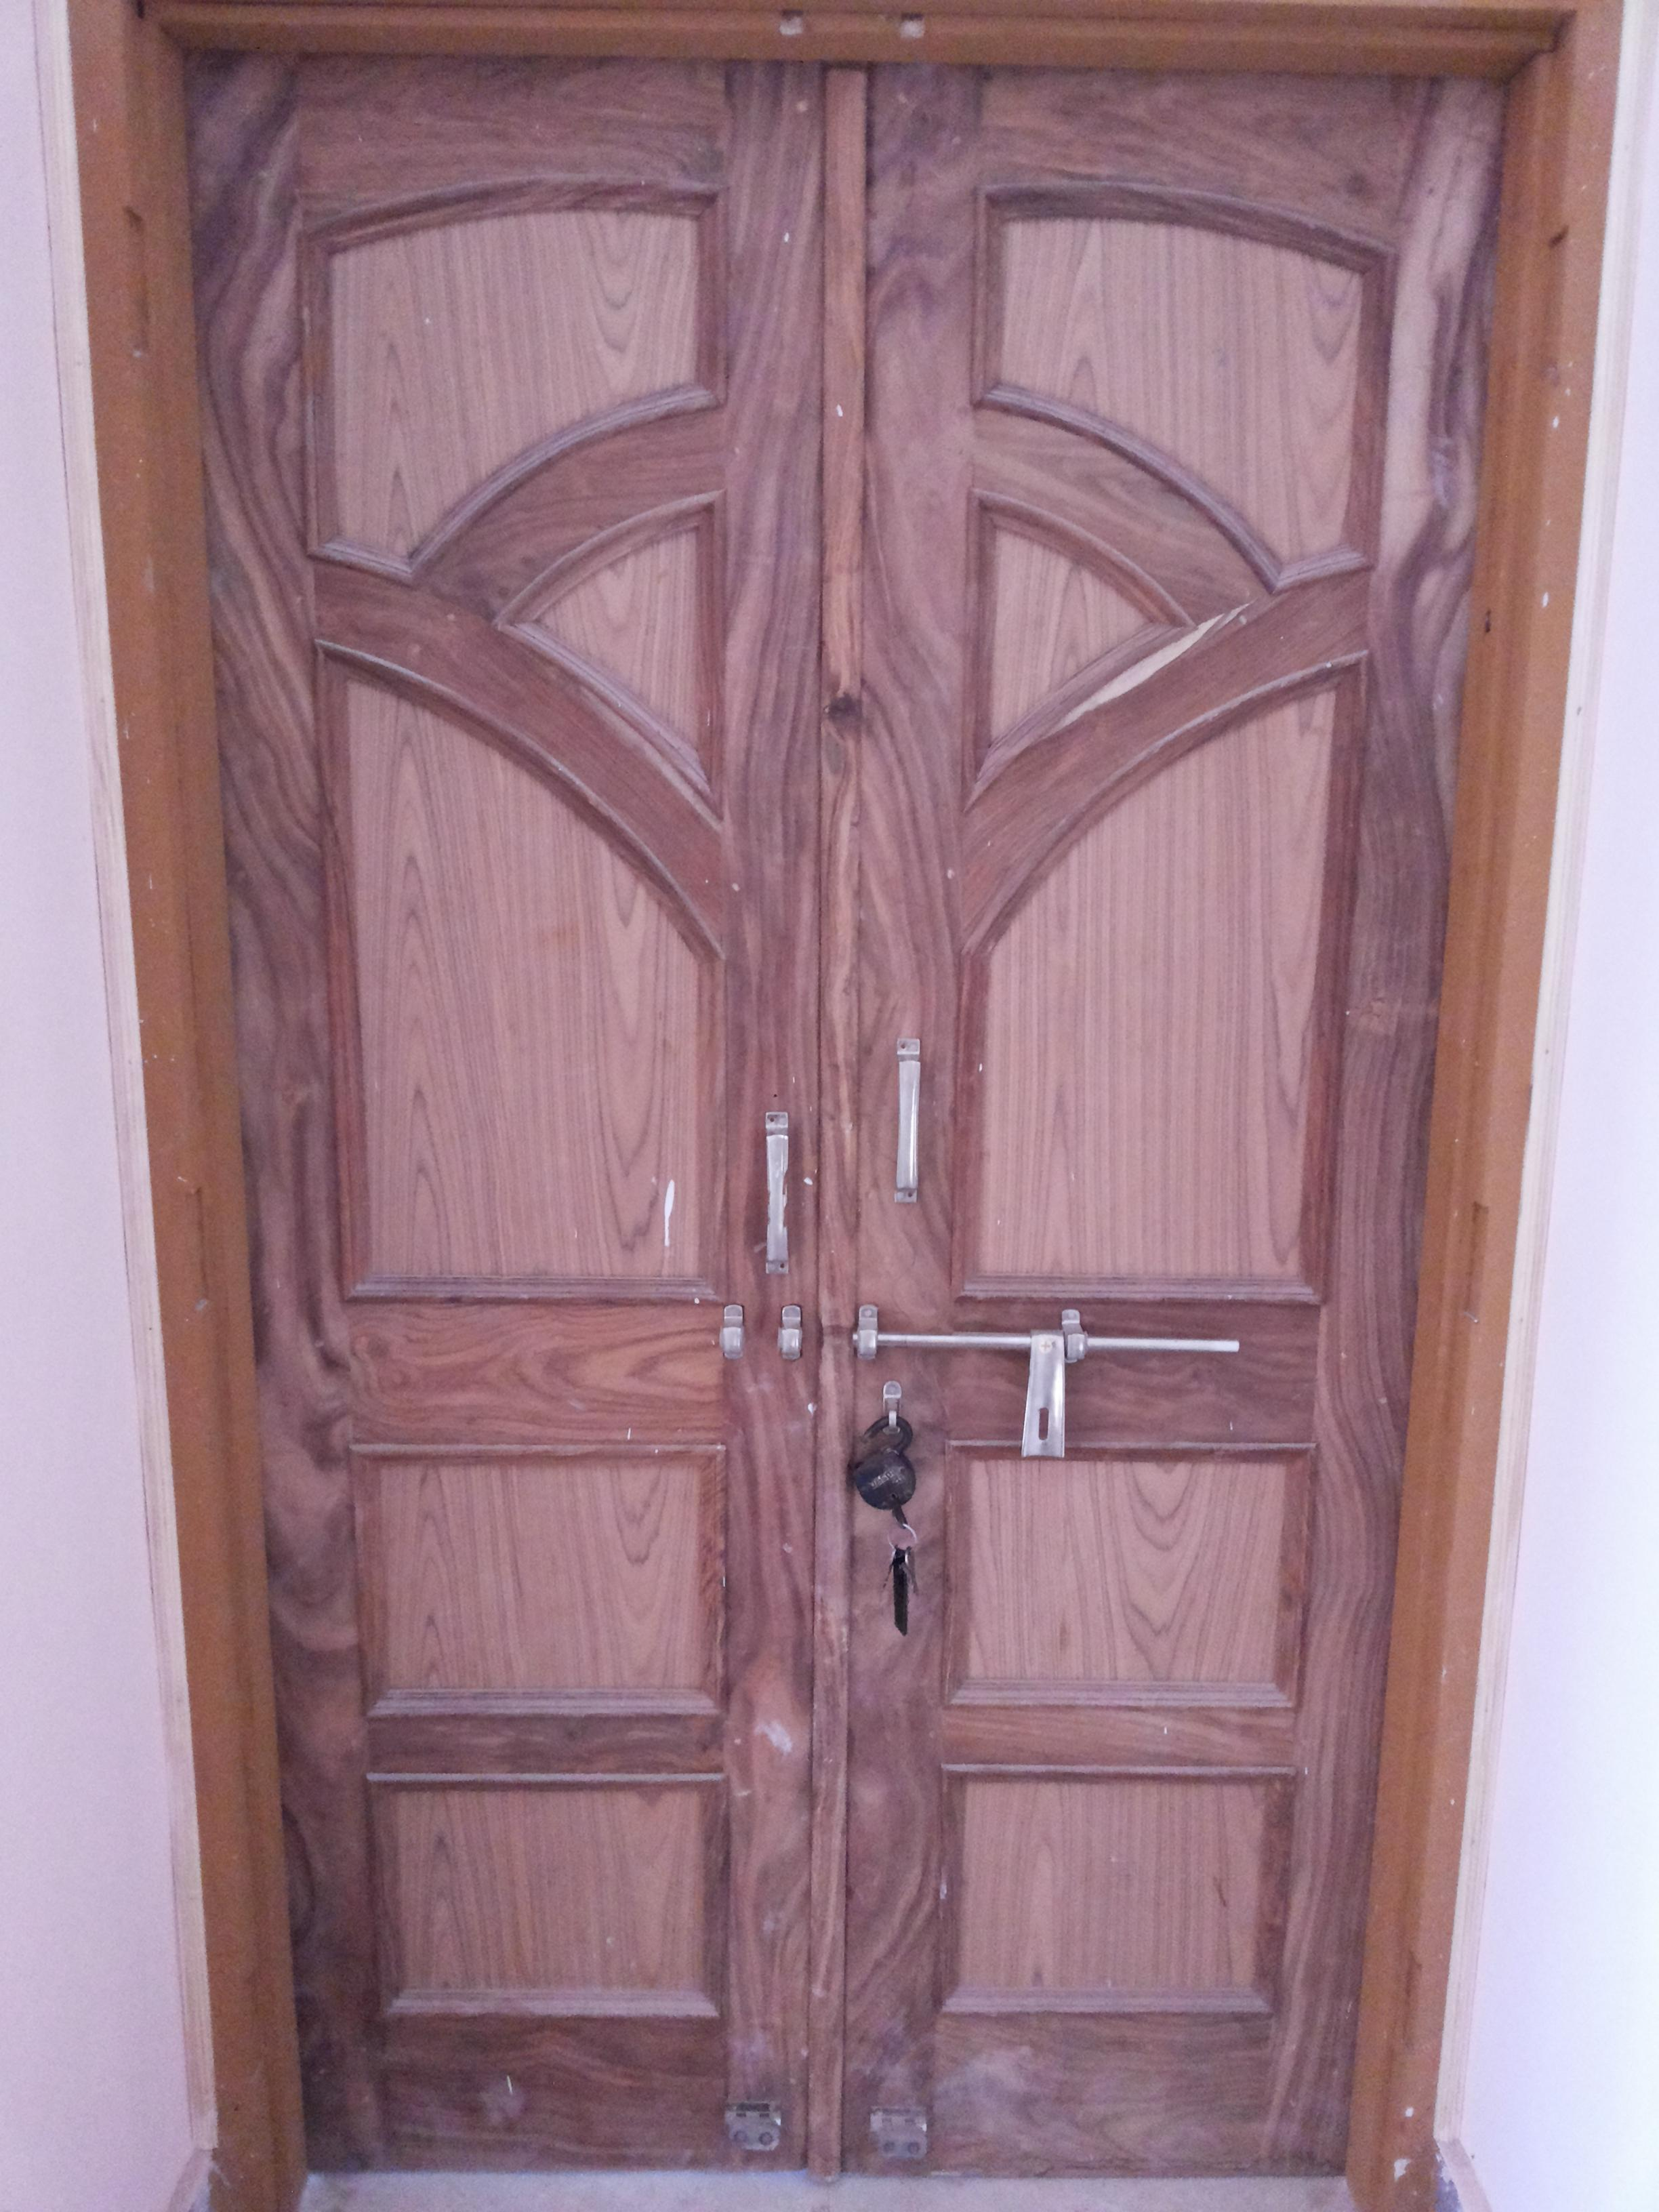 Wood door design with two panels gharexpert for Main two door designs